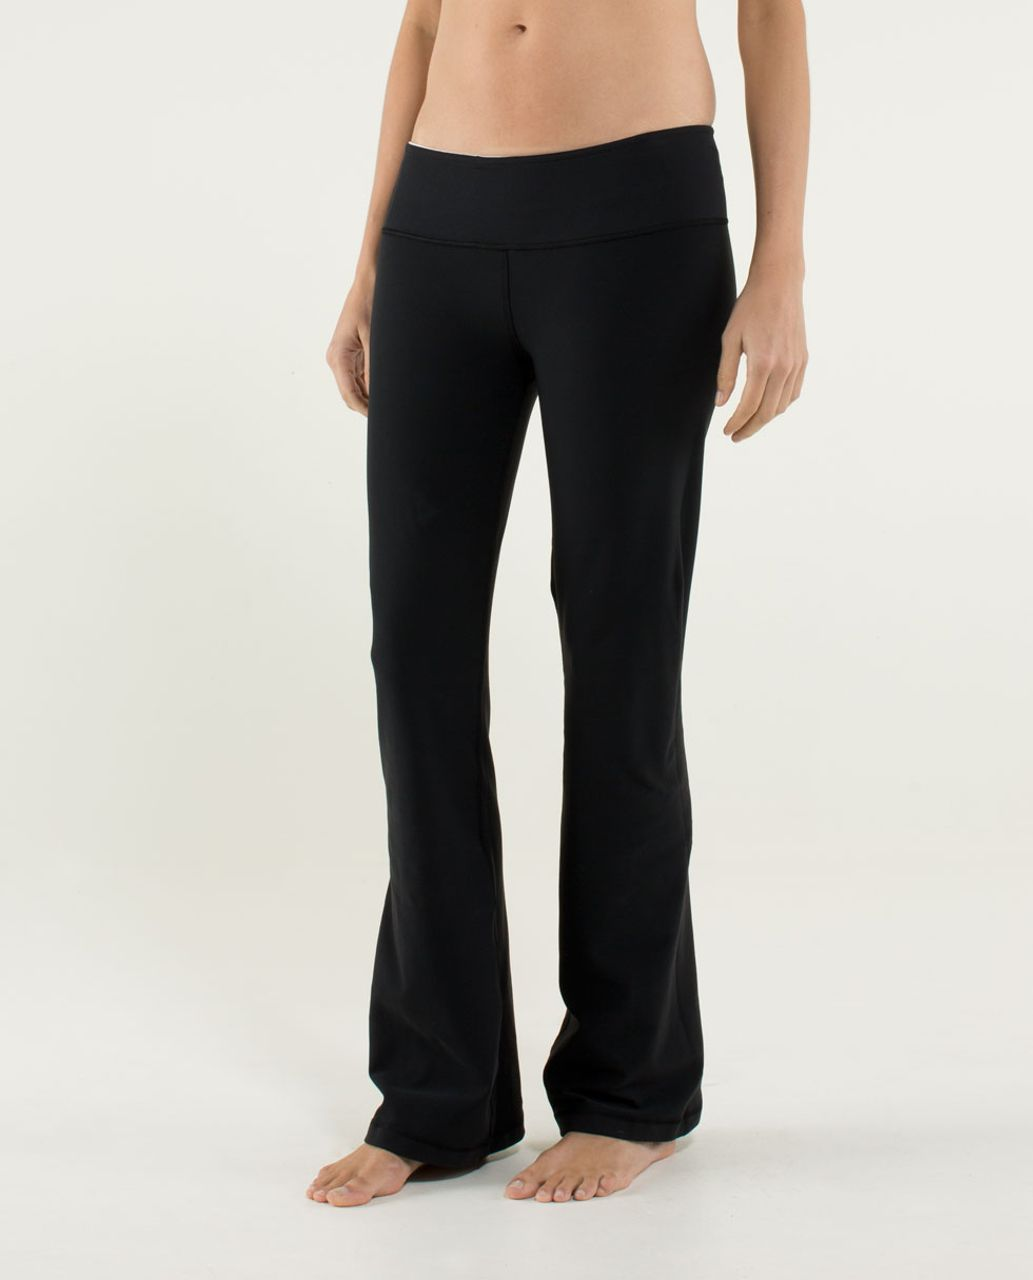 Lululemon Groove Pant (Regular) - Black / Angel Wing / Cornflower